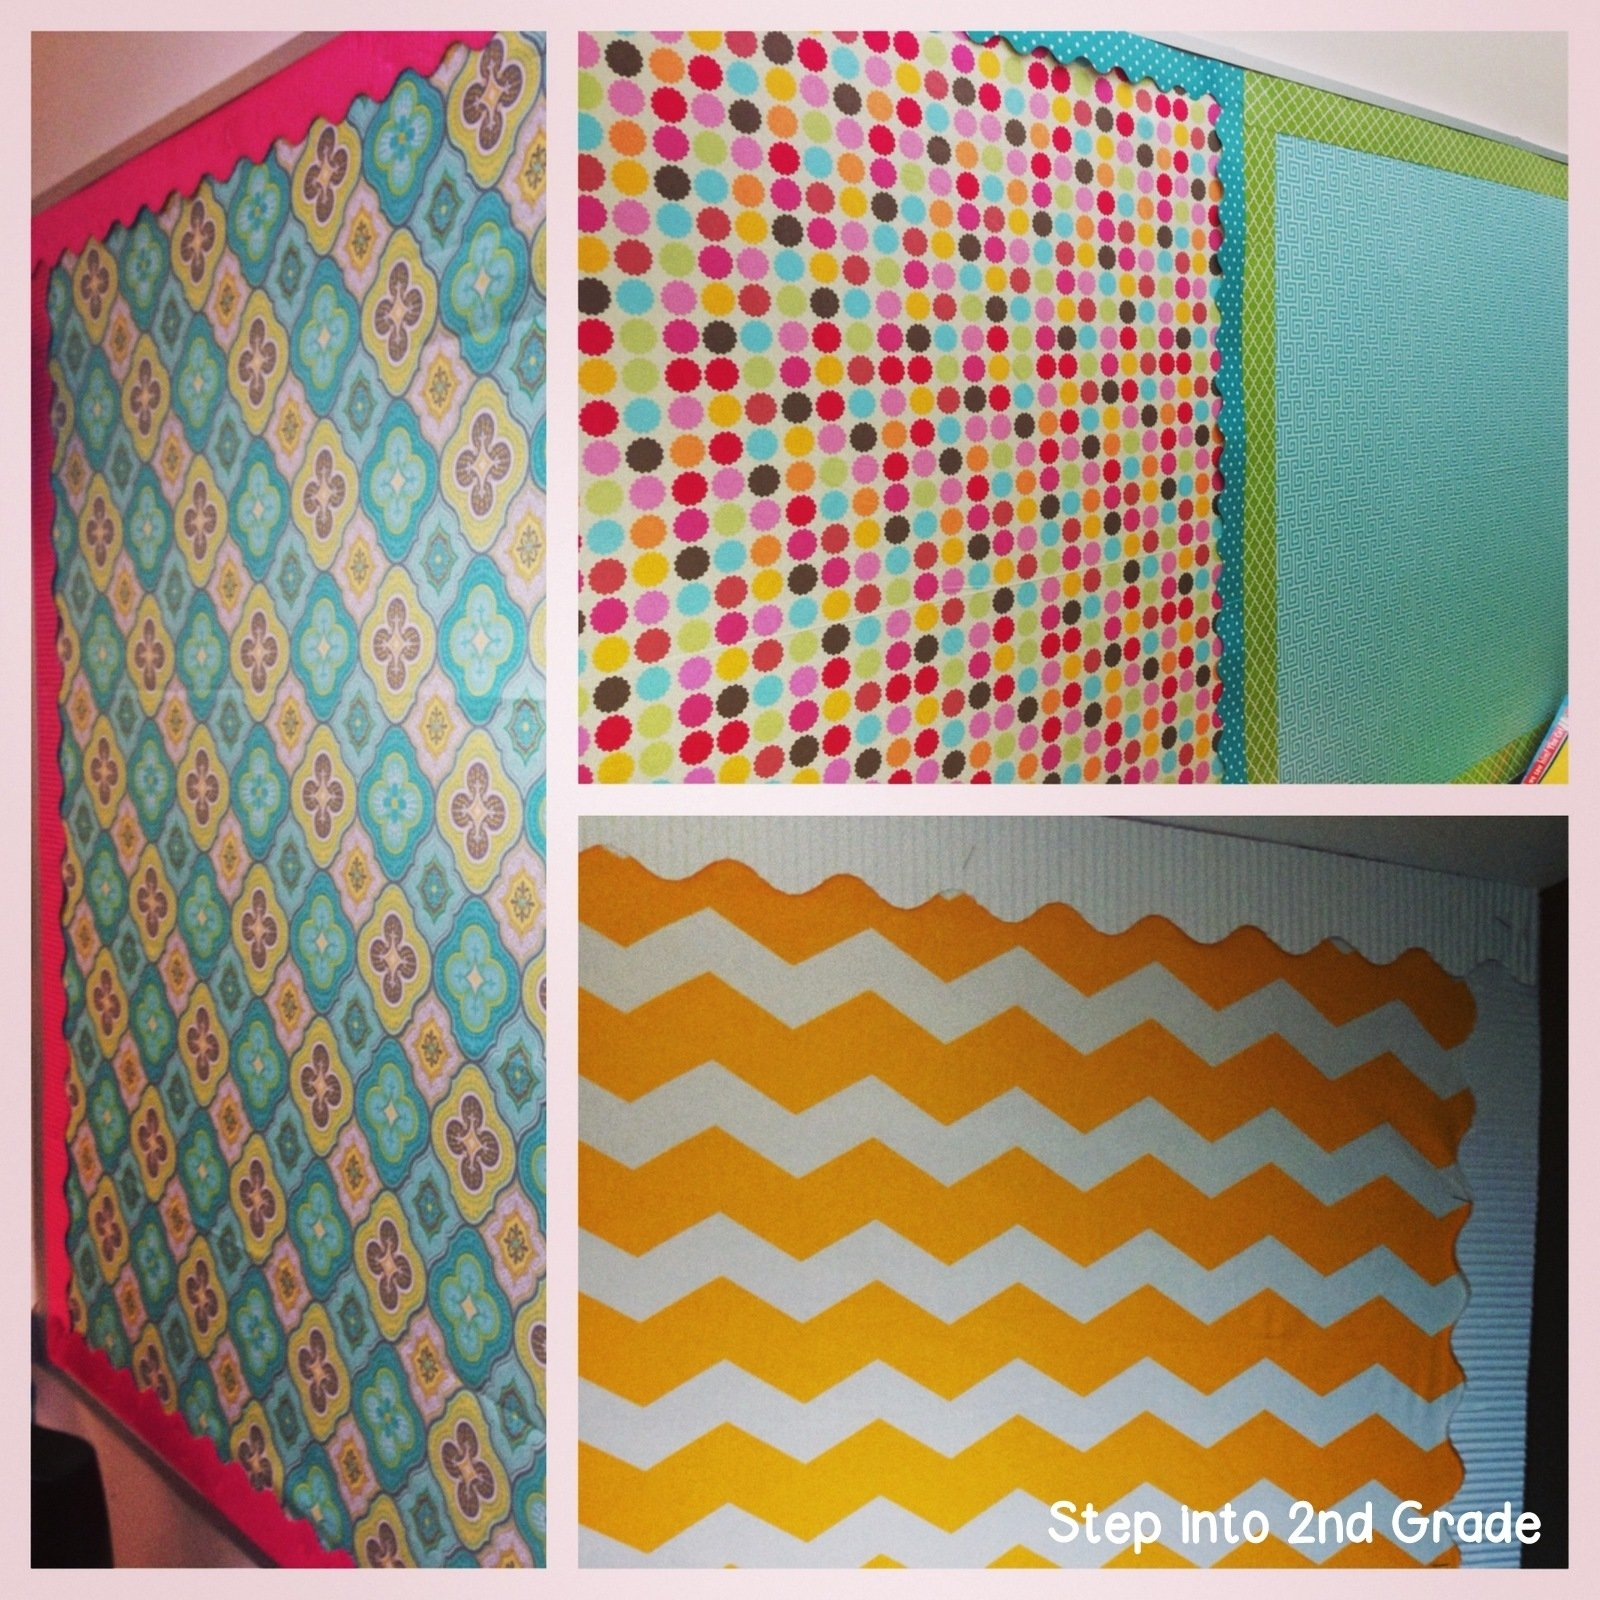 10 Stylish Bulletin Board Ideas For Work getting ready for next year step into 2nd grade 2020